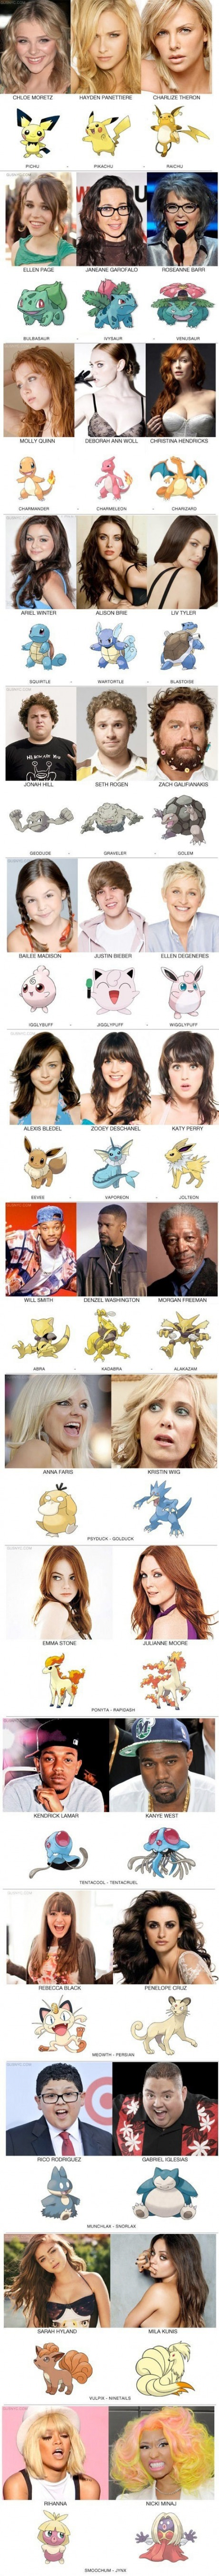 Celebrities and their Pokemon